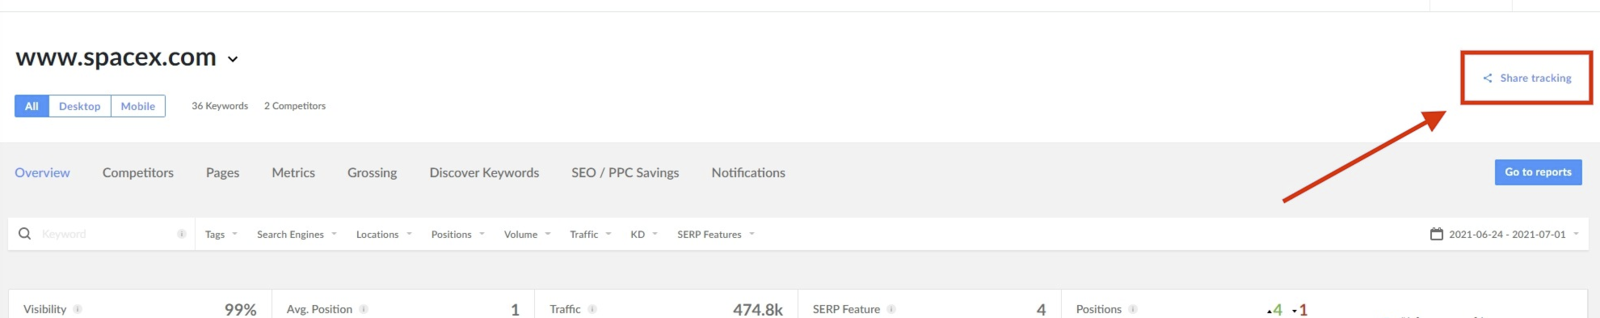 share tracking button